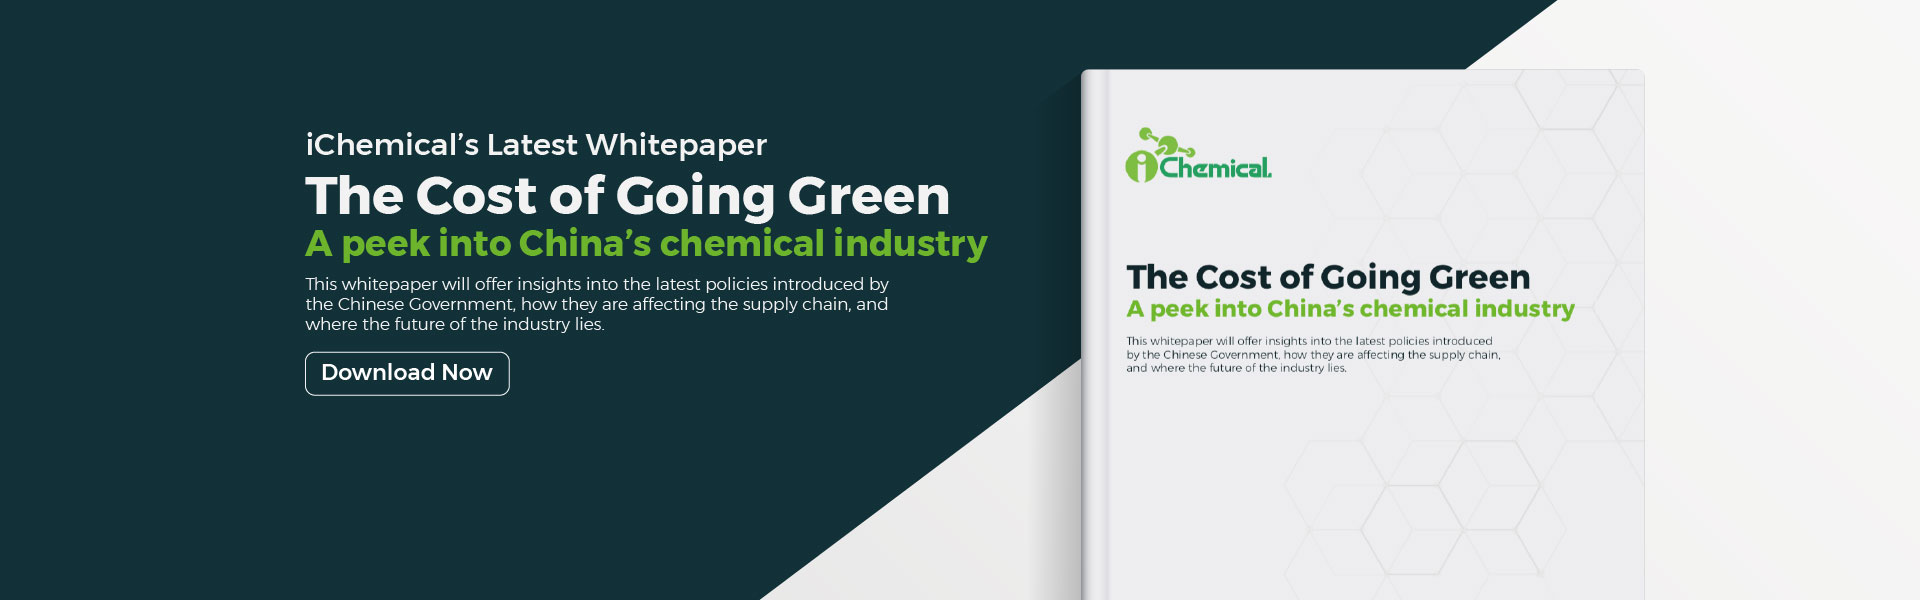 The Cost of Going Green Whitepaper - Get your free copy now